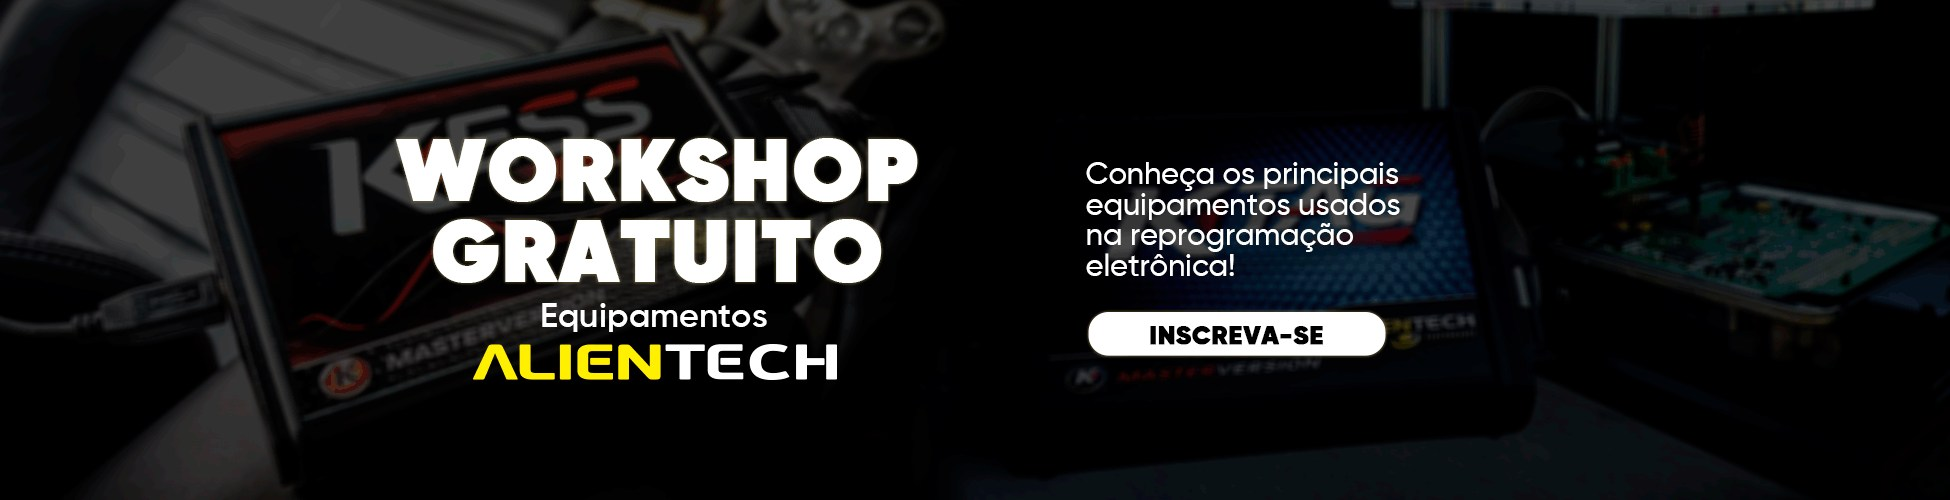 Workshop Equipamentos Alientech